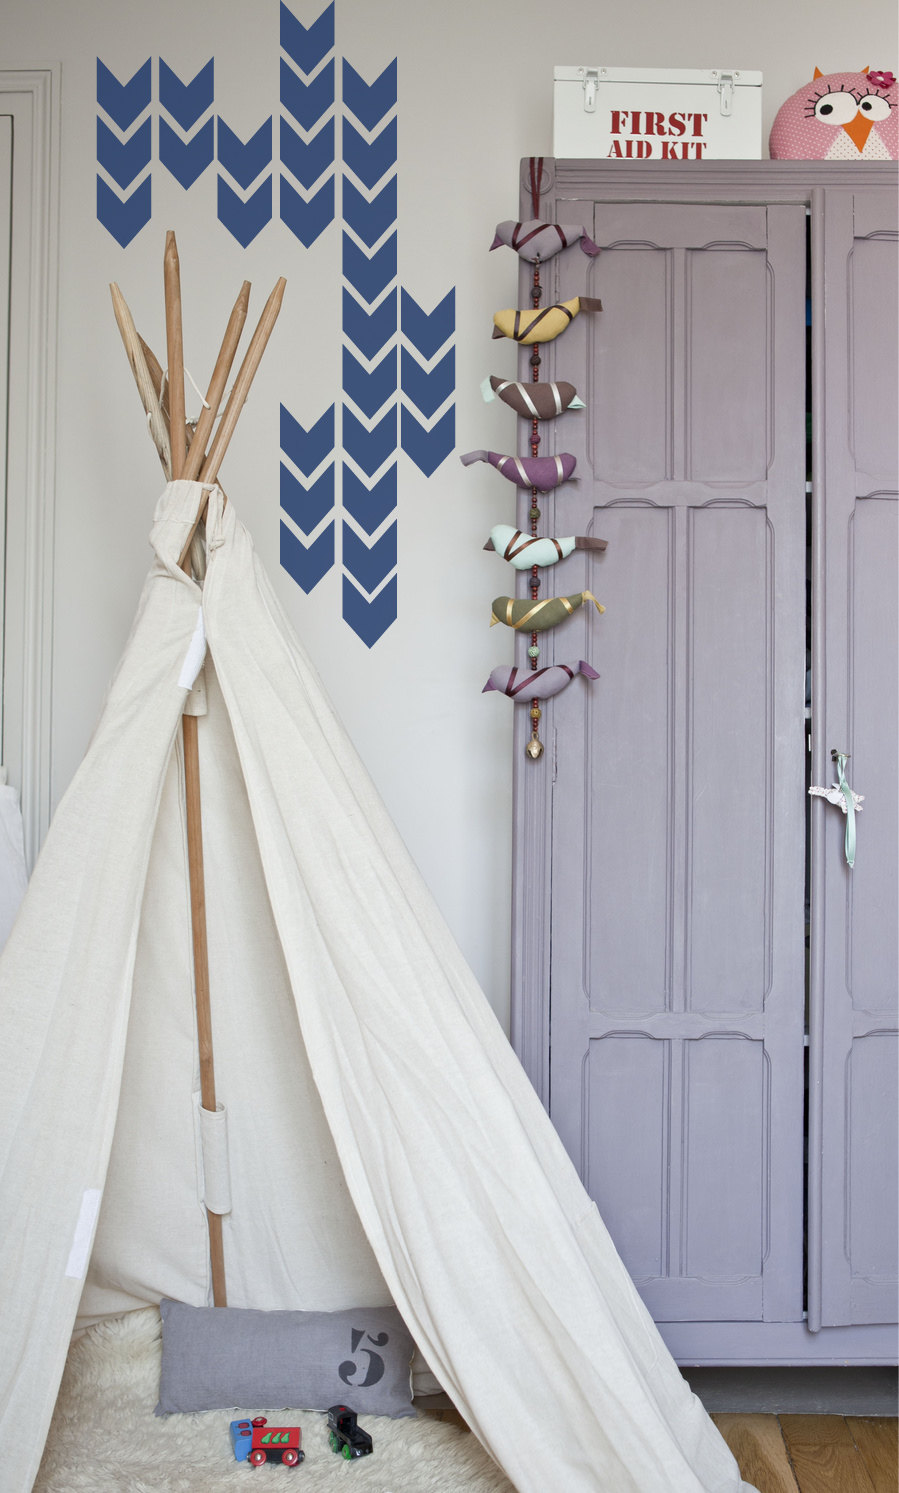 Ins Hot Sale Arrow wall stickers For Kids Room Boys Bedroom Wall Decals Removable Vinyl Teepee Wall Art Decals Mural D964